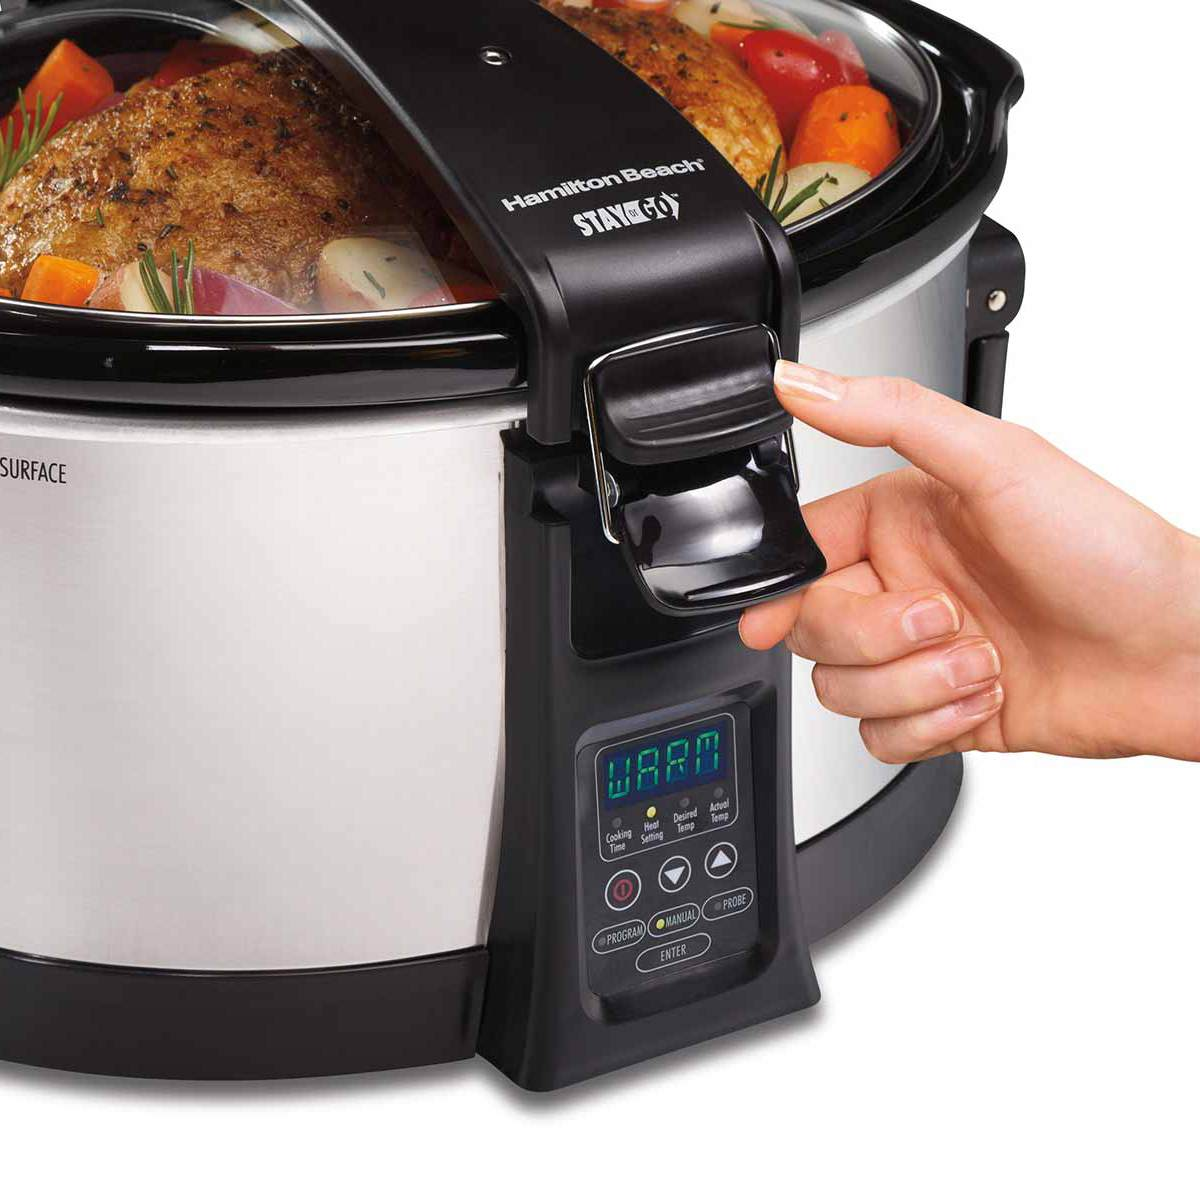 Set & Forget® Programmable 6 Quart Slow Cooker (33464)